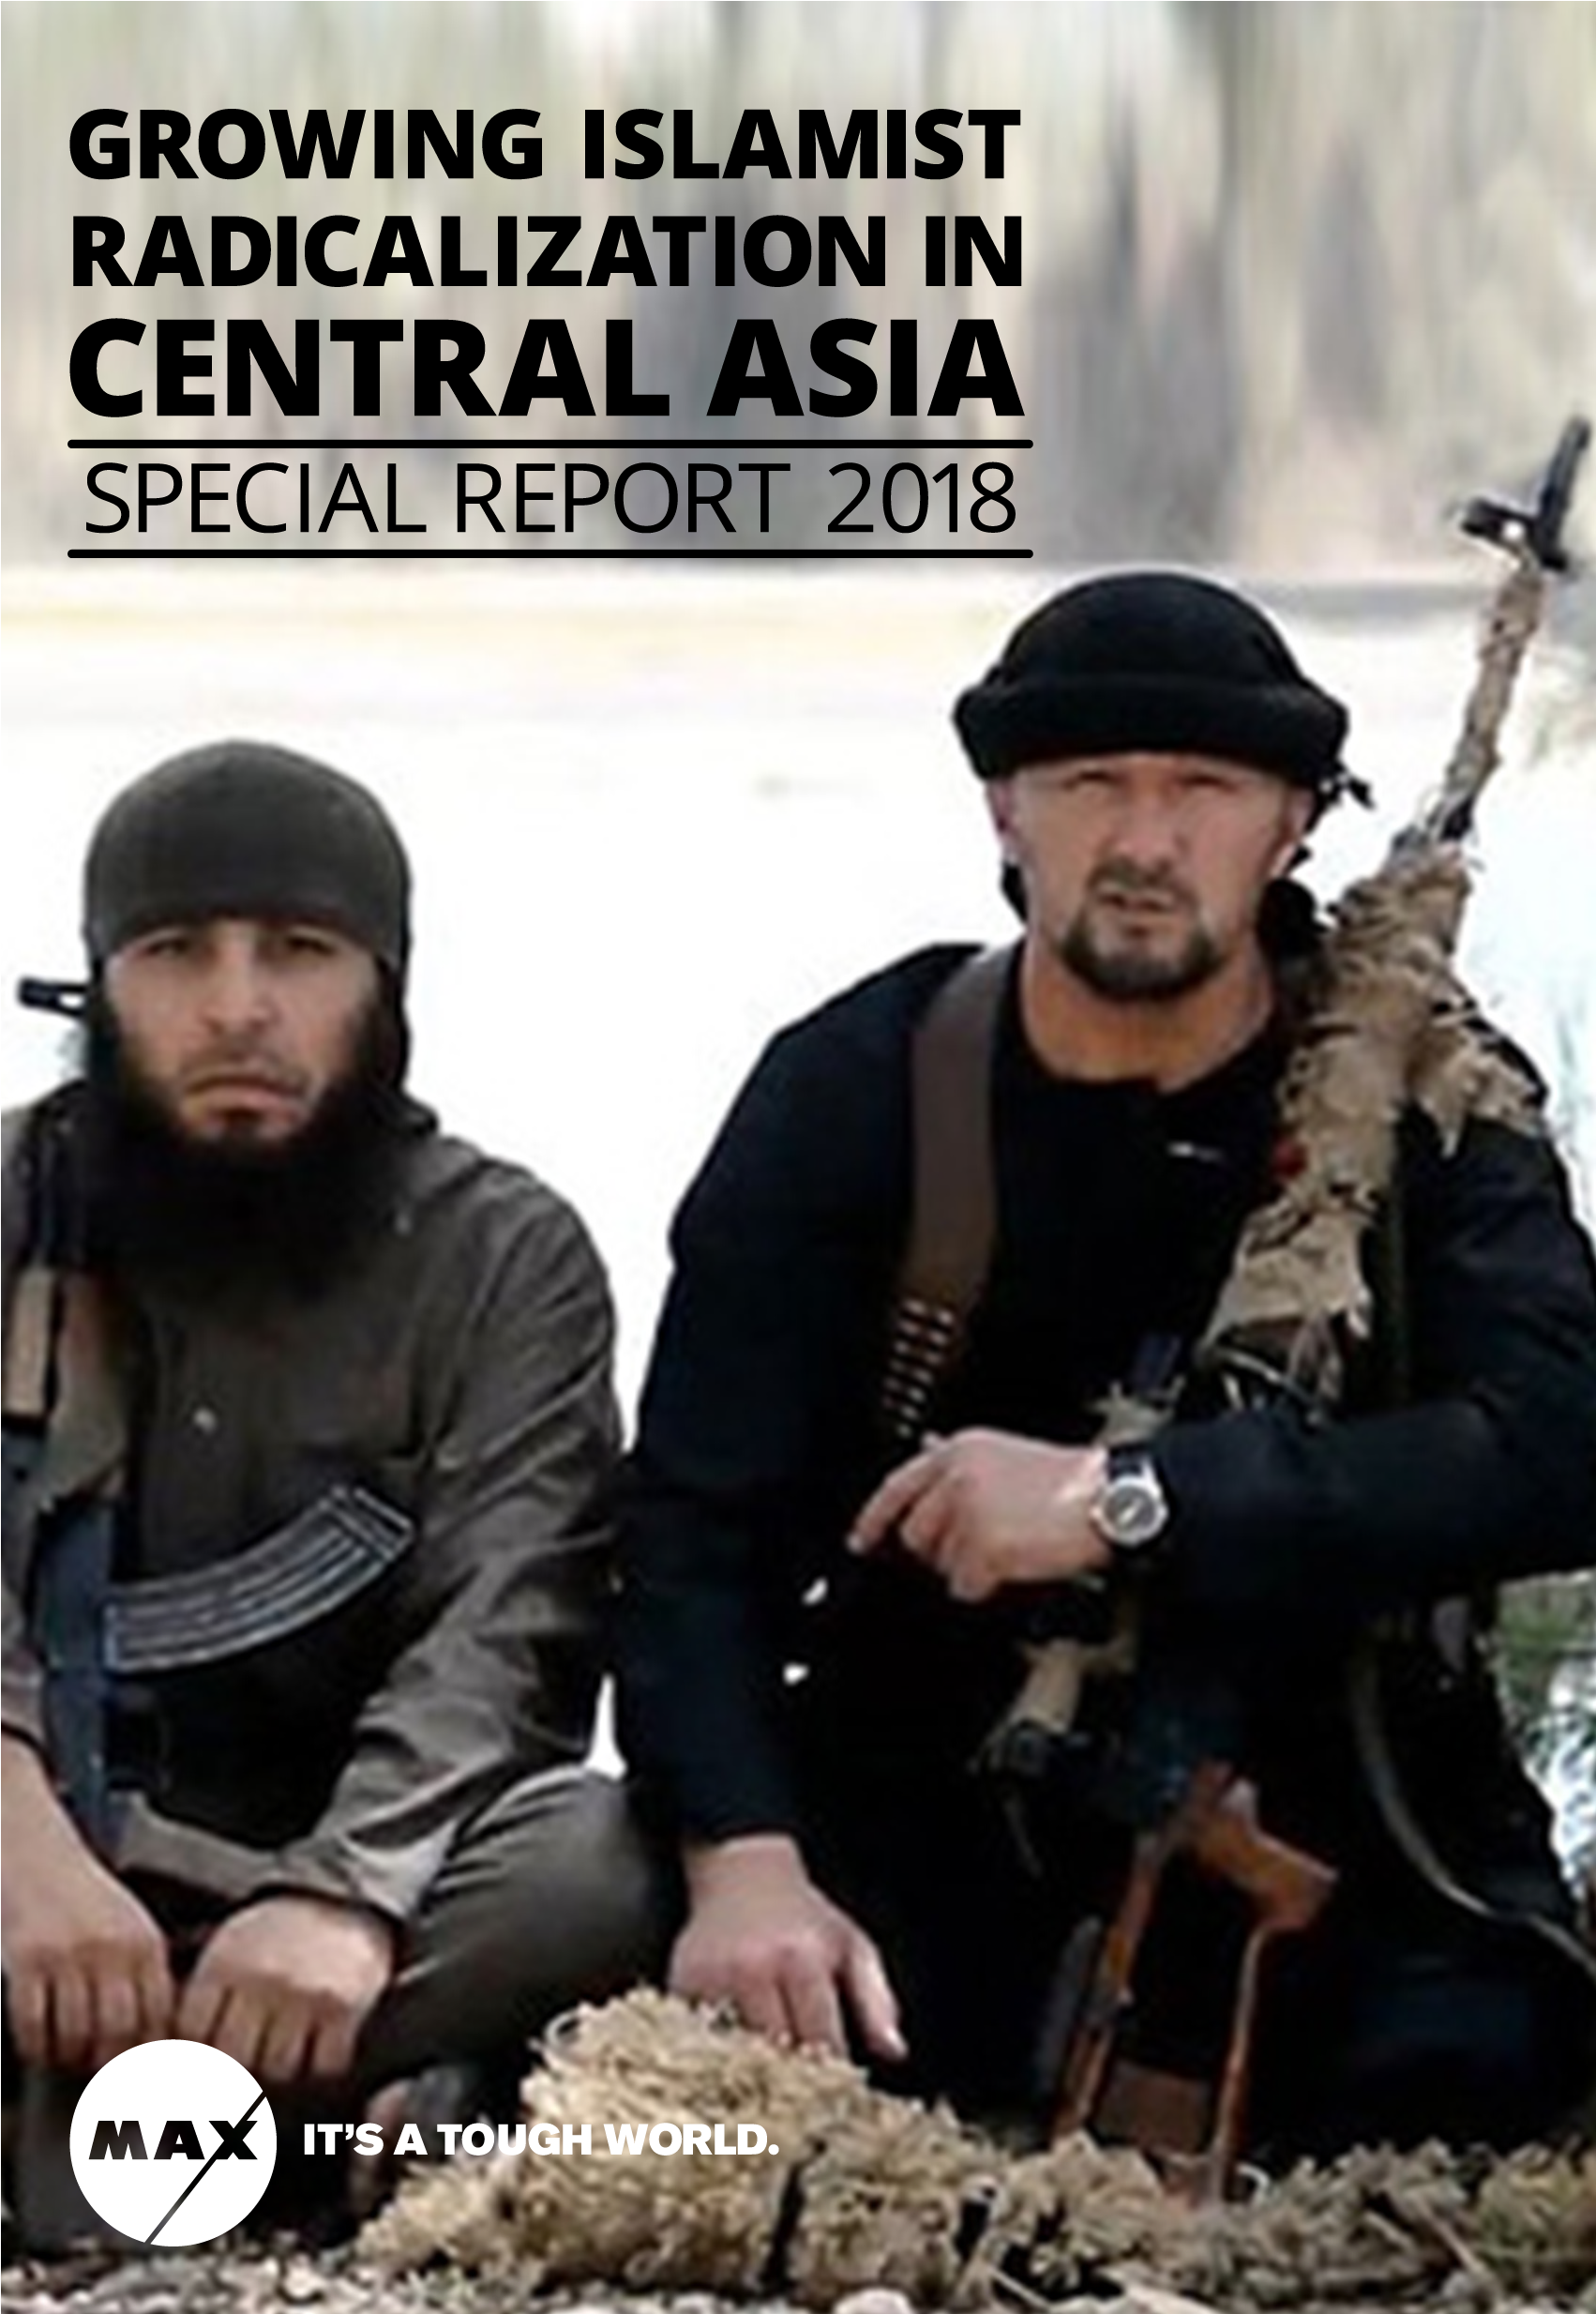 Growing Islamist Radicalization in Central Asia